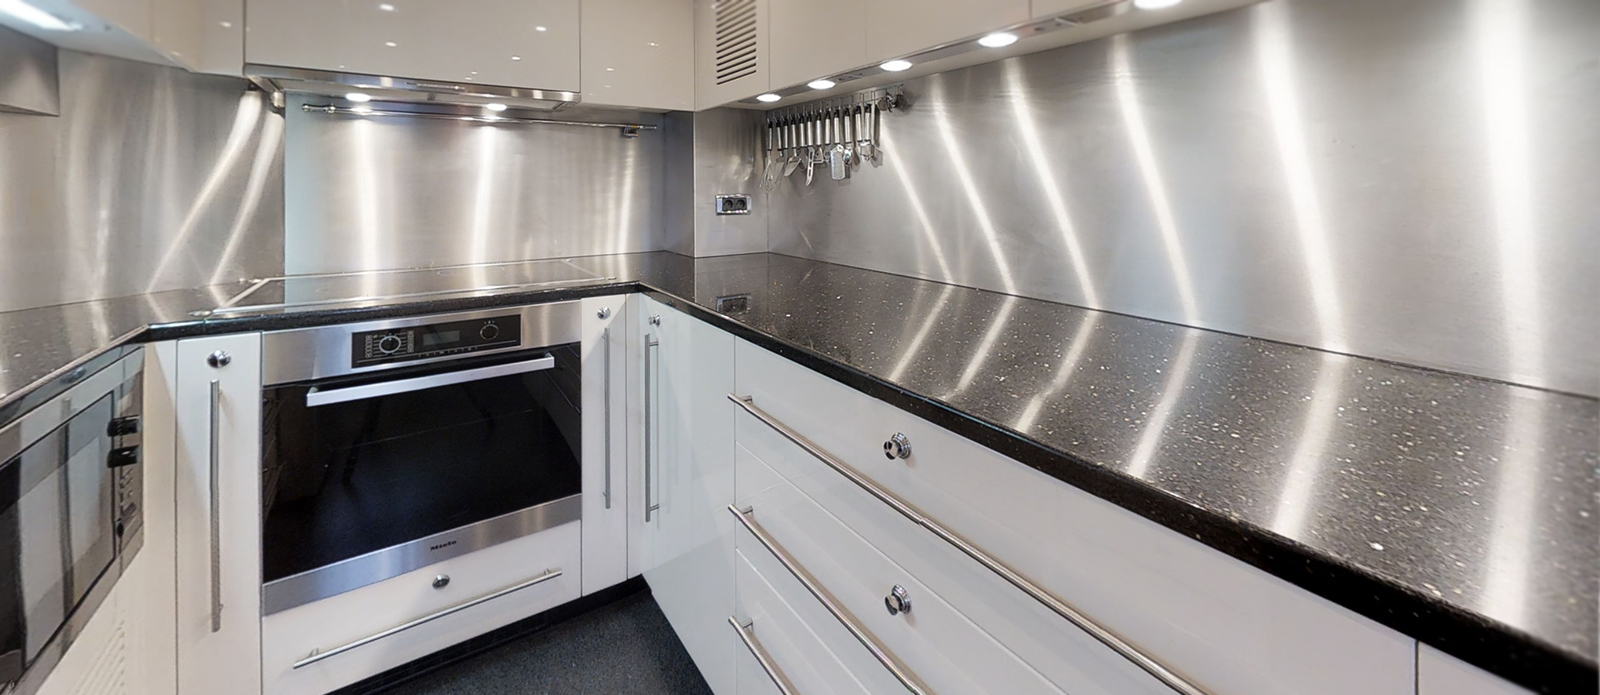 Sunseeker 34m Galley - White Pearl